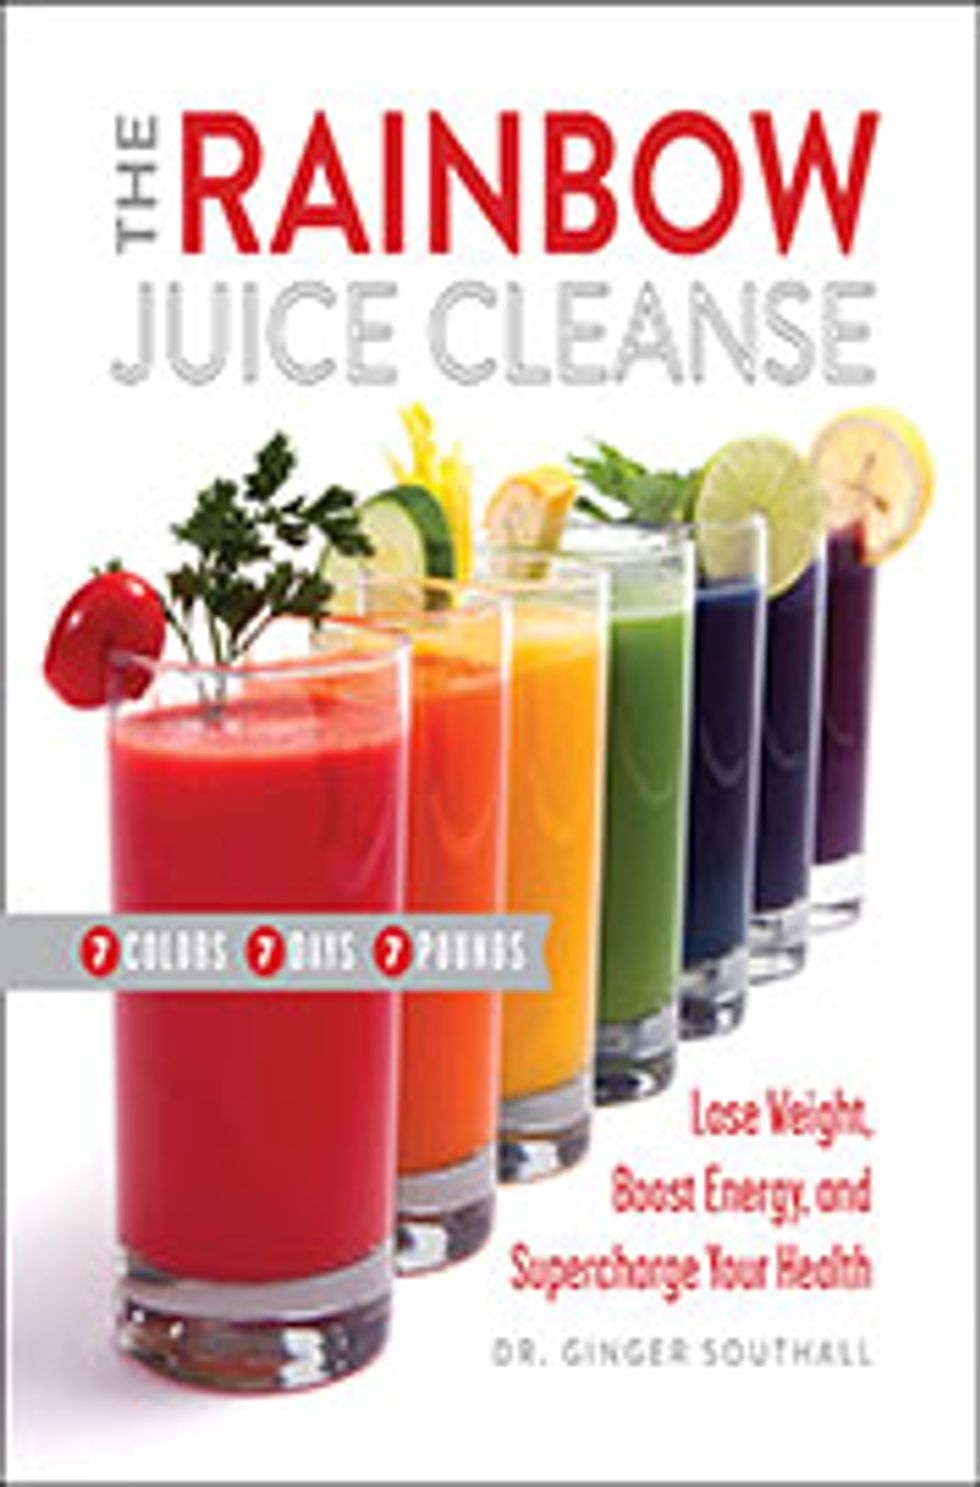 An Excerpt From The Rainbow Juice Cleanse